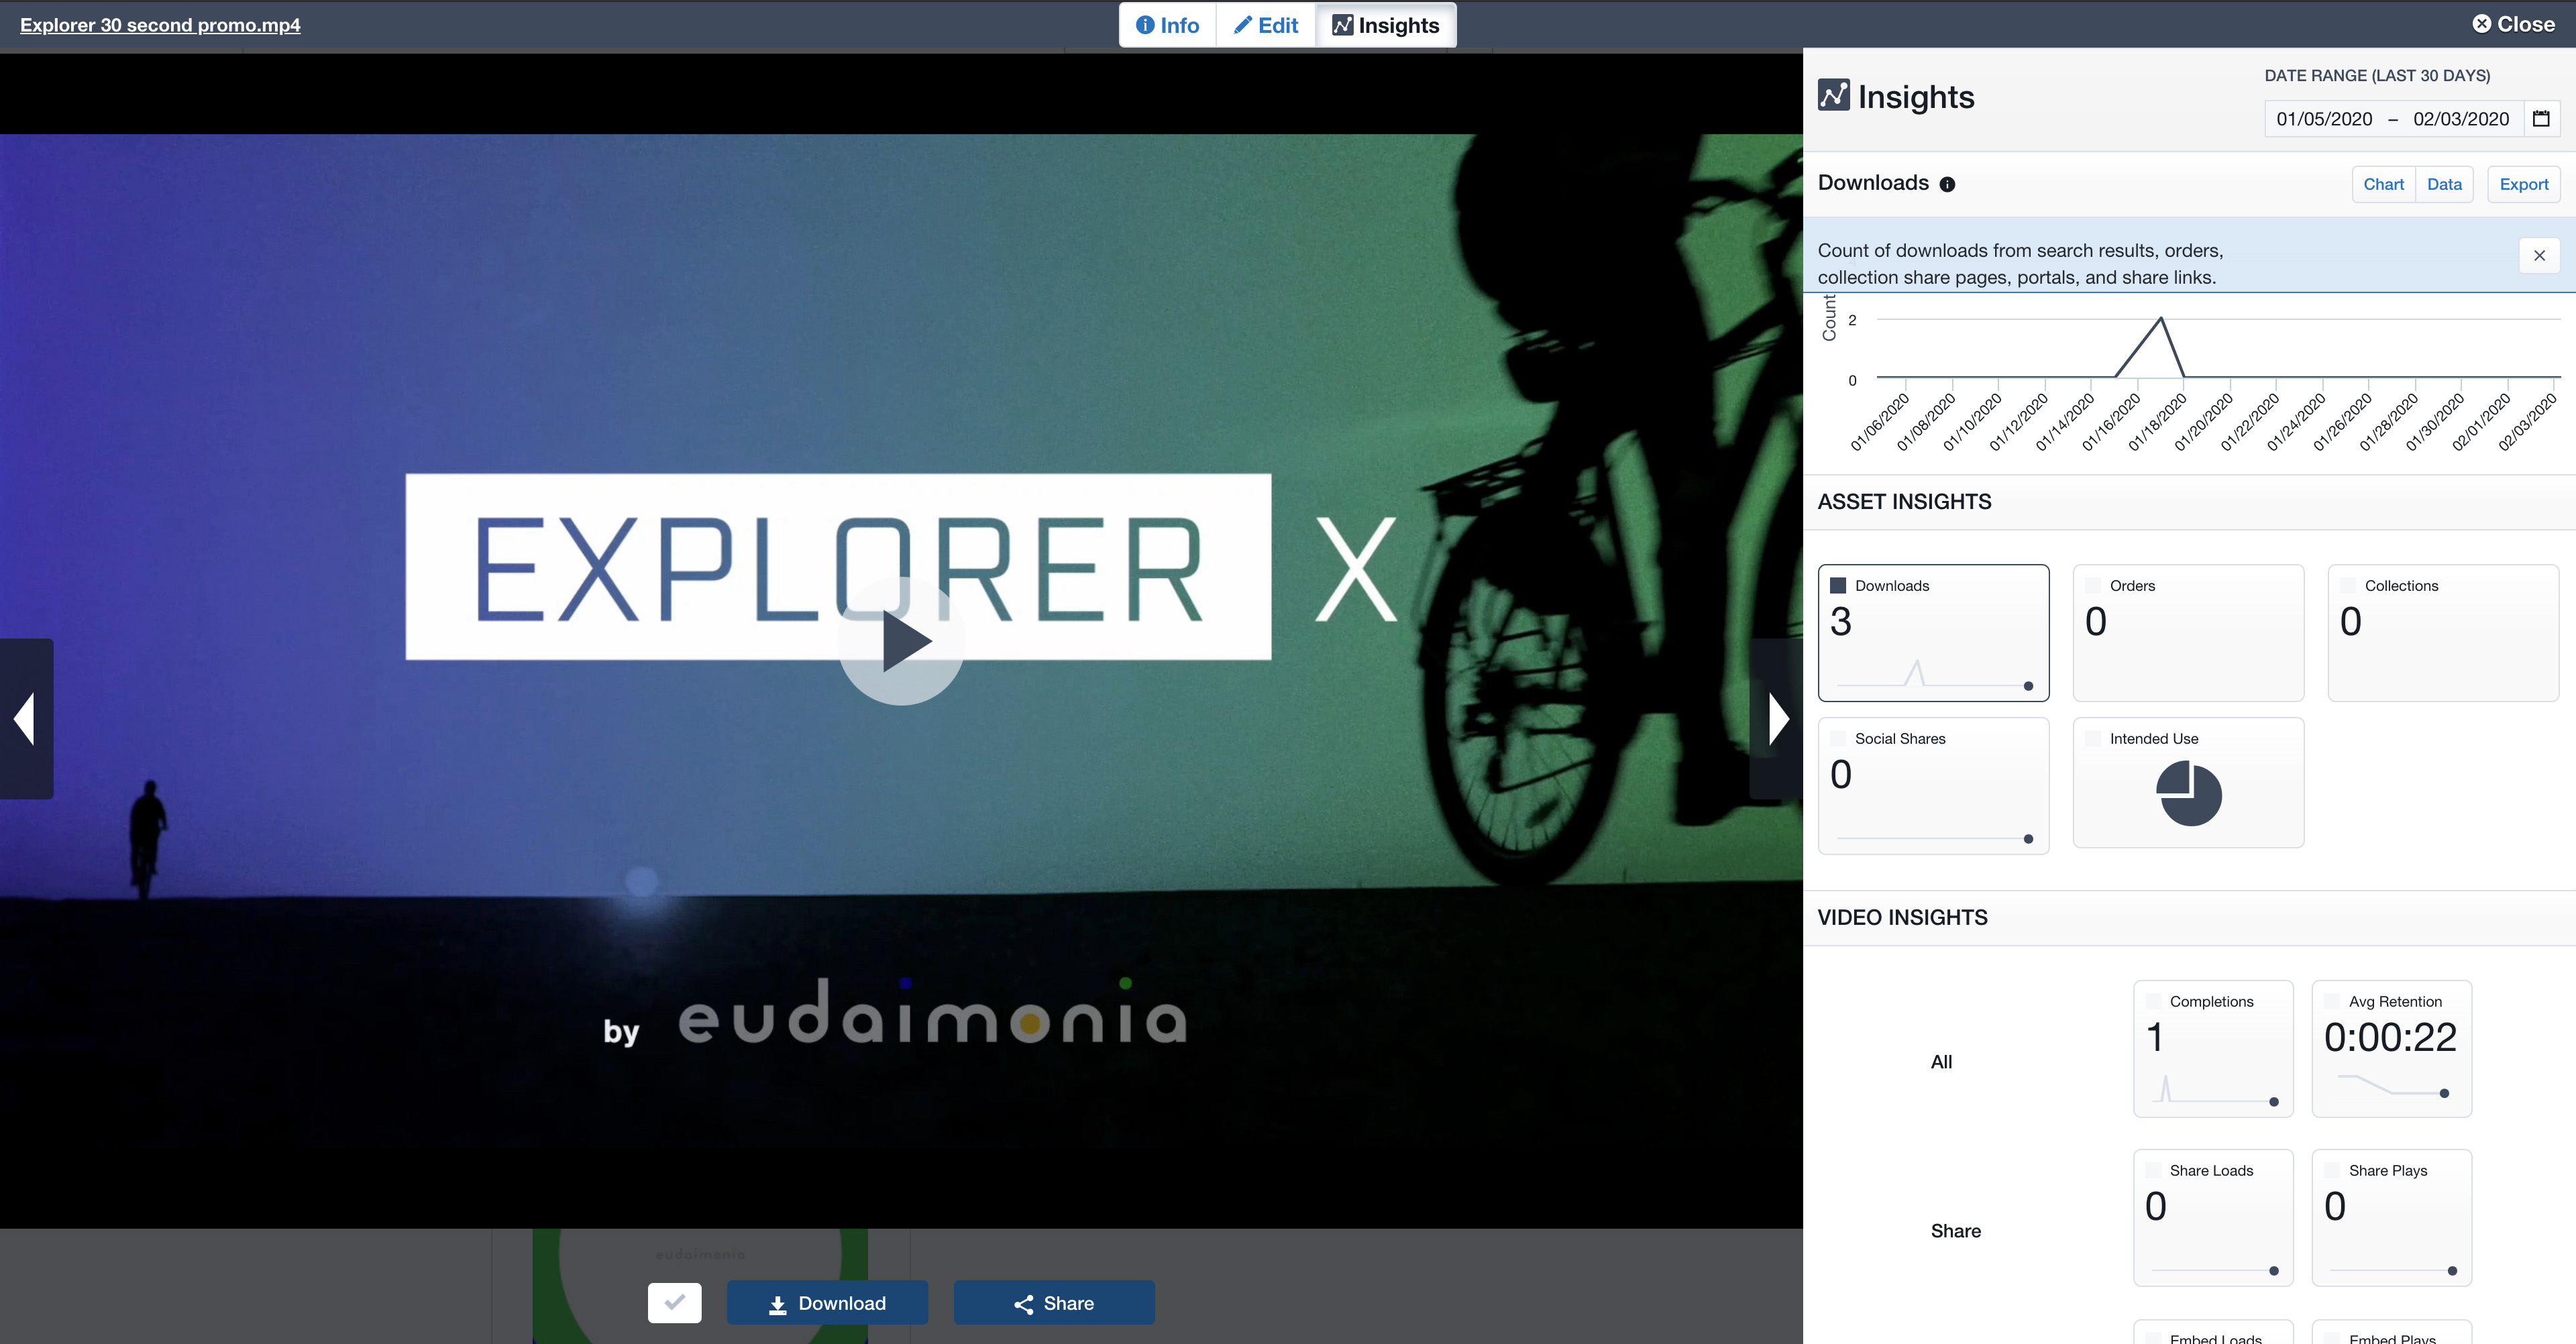 Preview, embed, and track images, documents, and videos.